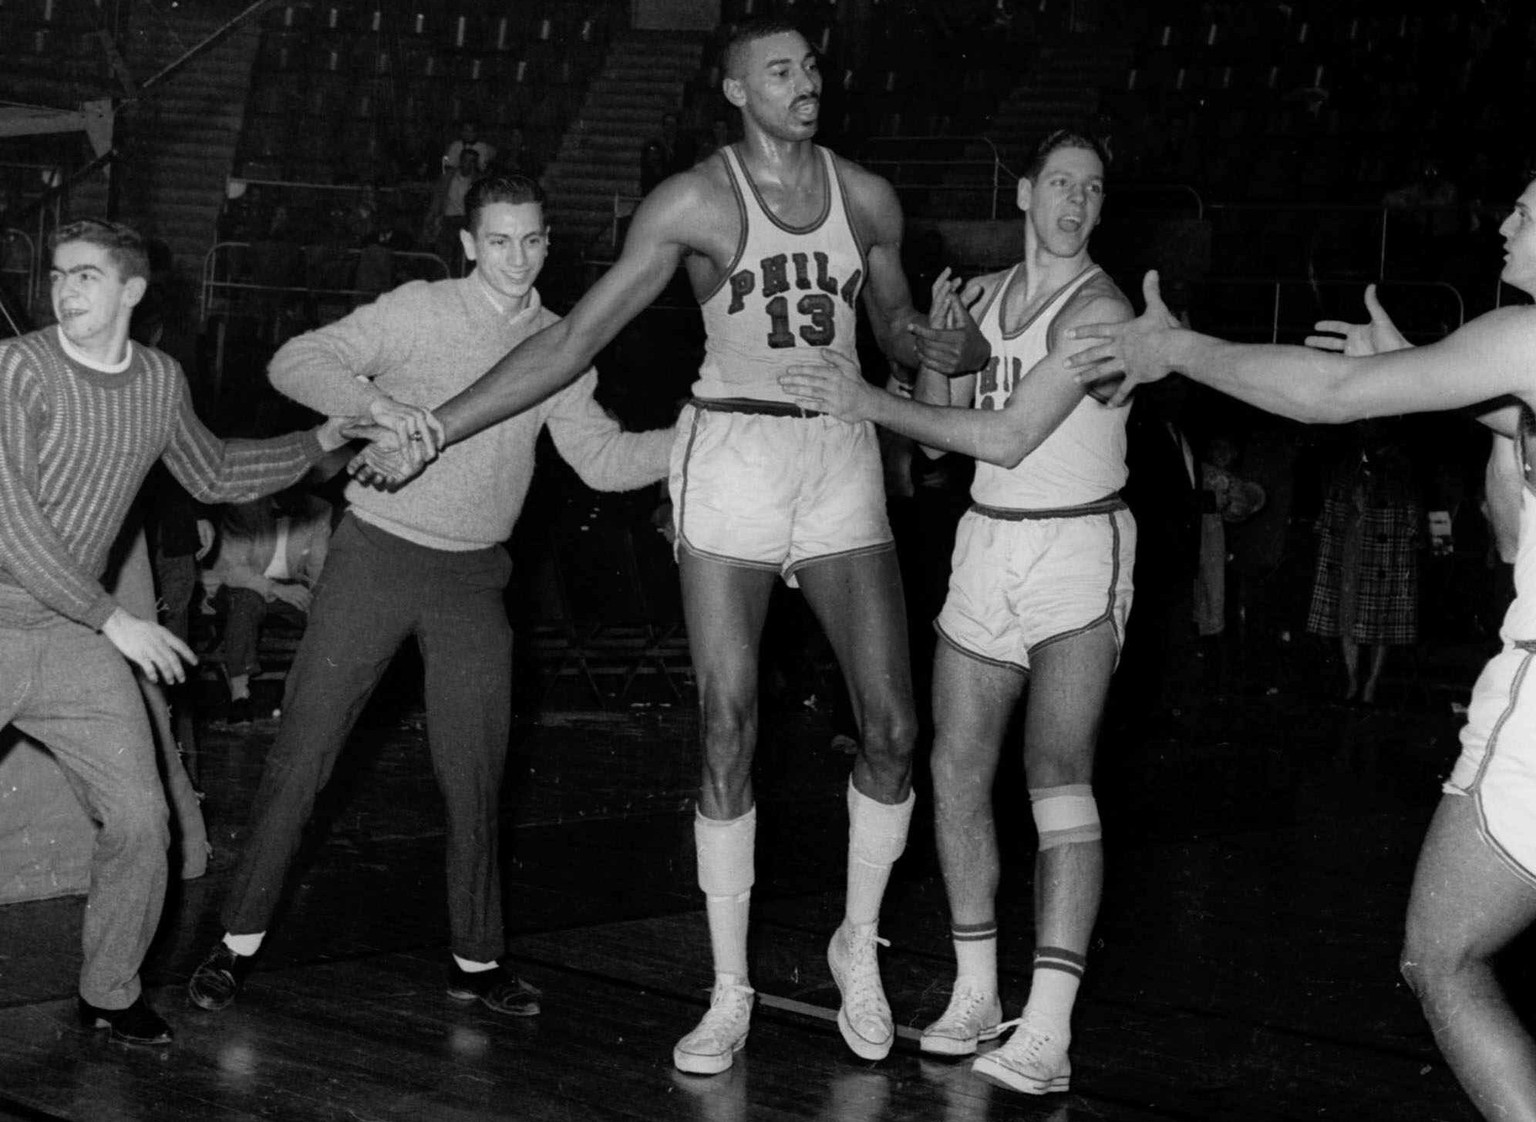 FILE -- Wilt Chamberlain (13) of the Philadelphia Warriors, is congratulated by unidentified teammates and fans who rushed onto the floor in Hershey, Pa., after Chamberlain scored his 100th points for an NBA record, in this March 2, 1962 photo. Chamberlain, one of the most dominant players in the history of basketball died Tuesday Oct. 12, 1999 at age 63, a Los Angeles Lakers spokesman said. (AP Photo/File)